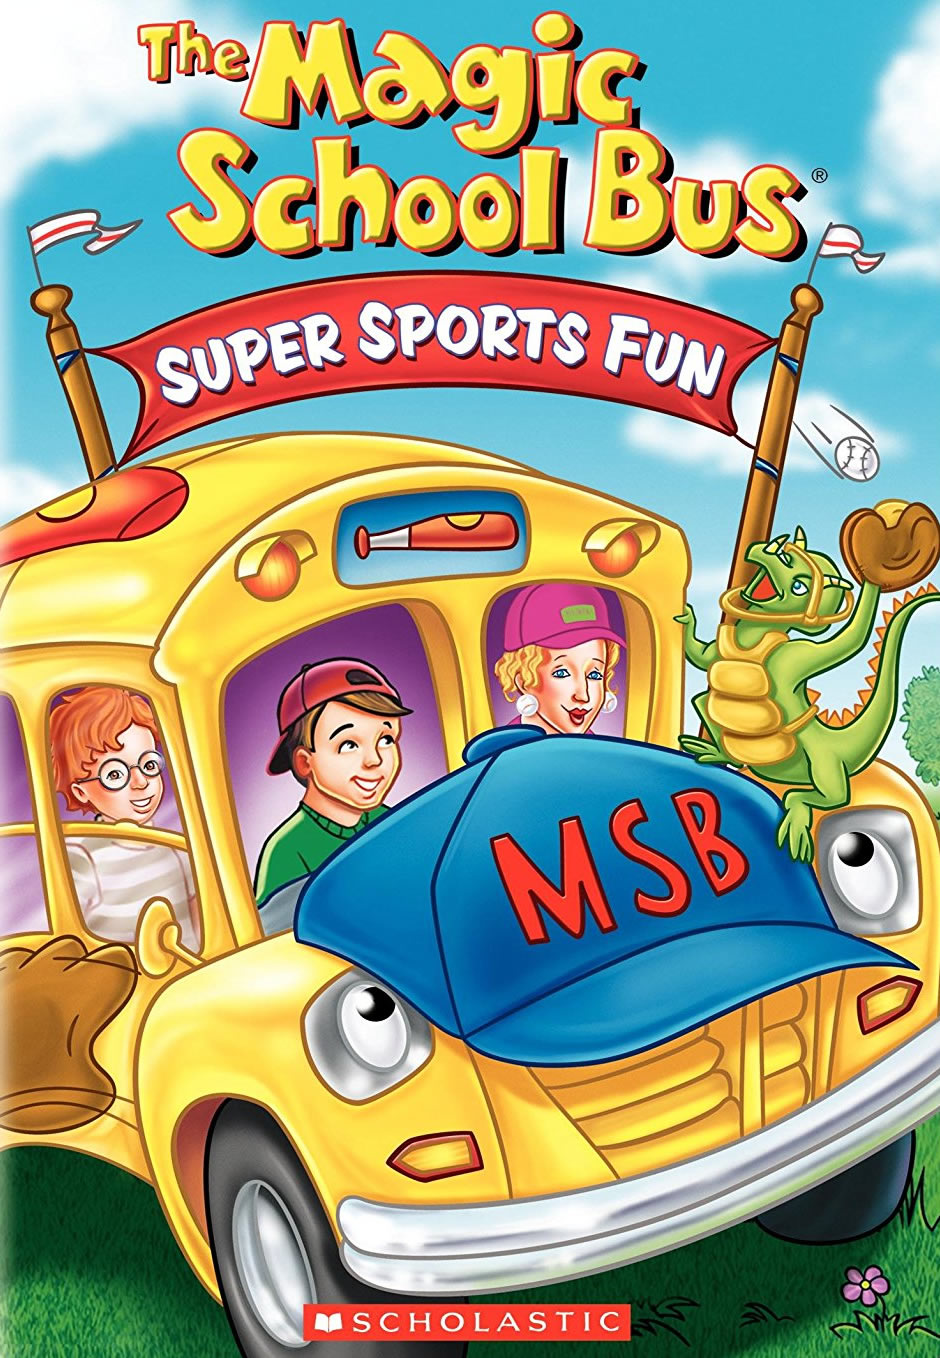 Magic School Bus The Magic School Bus - Super Sports Fun